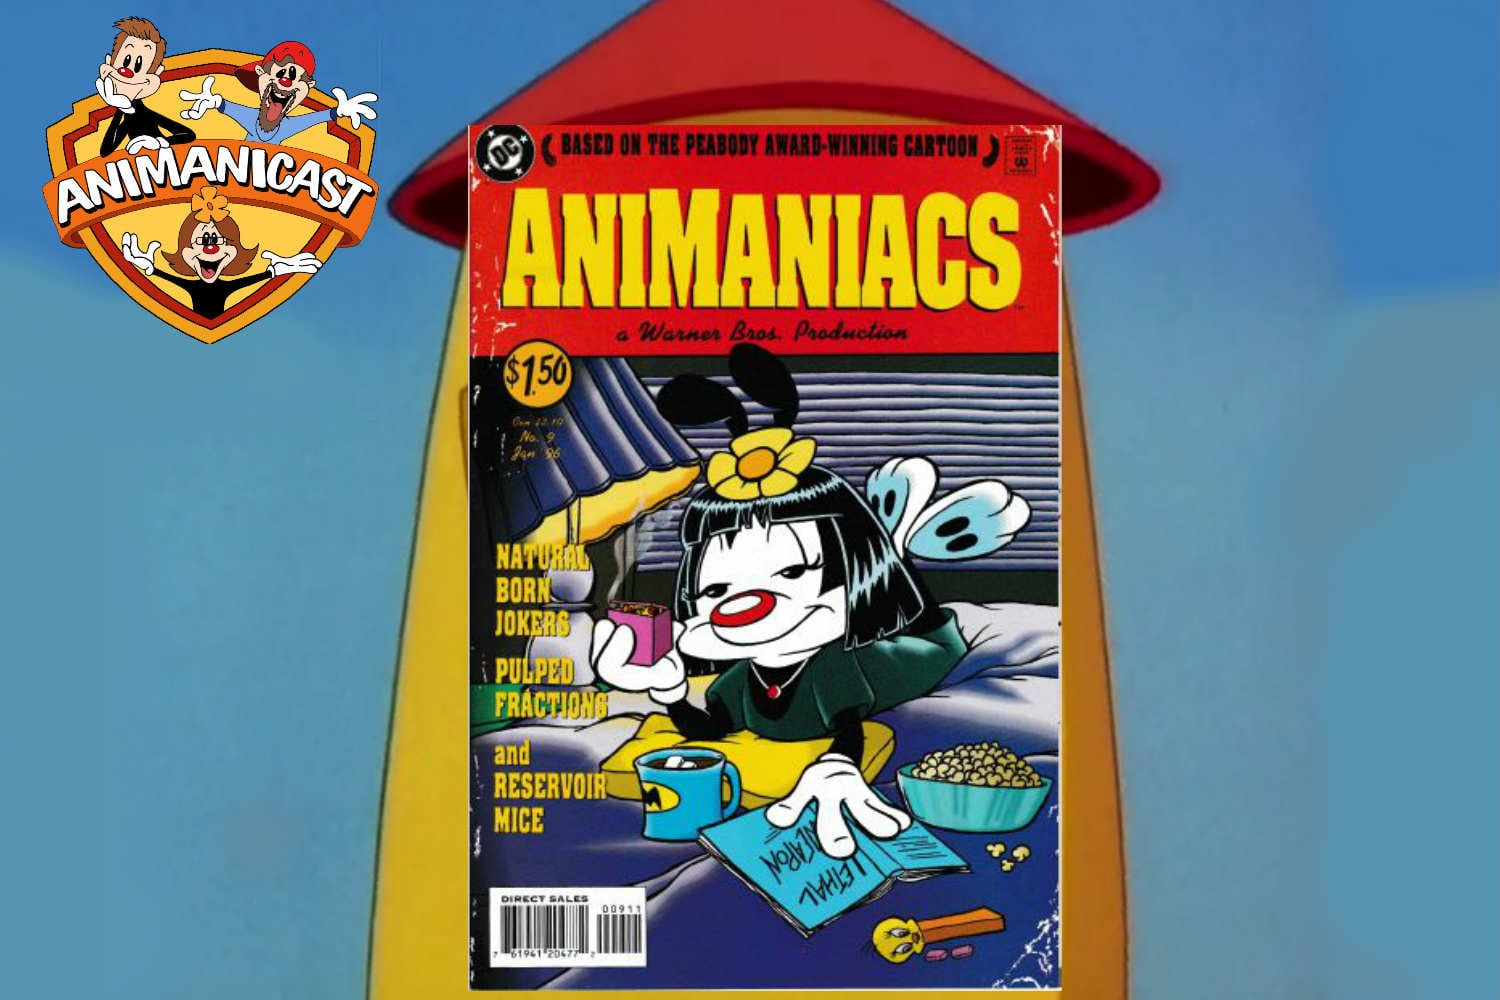 """Animanicast: Discussing Animaniacs Comic Issue #9 """"Pulped Fractions"""""""